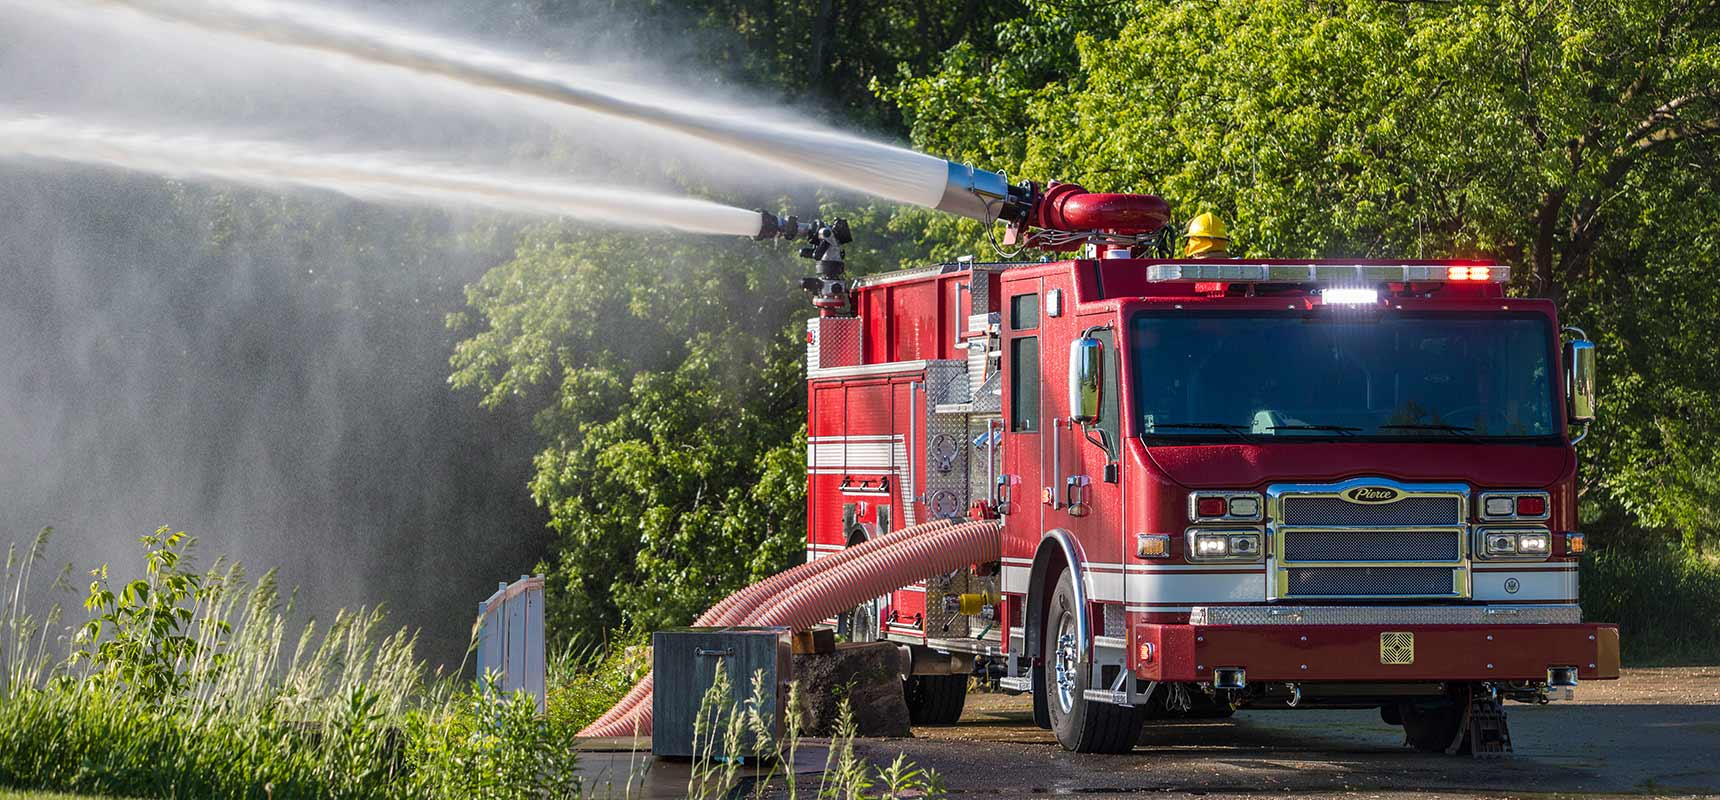 A red industrial fire truck is pumping water in a green wooded setting.